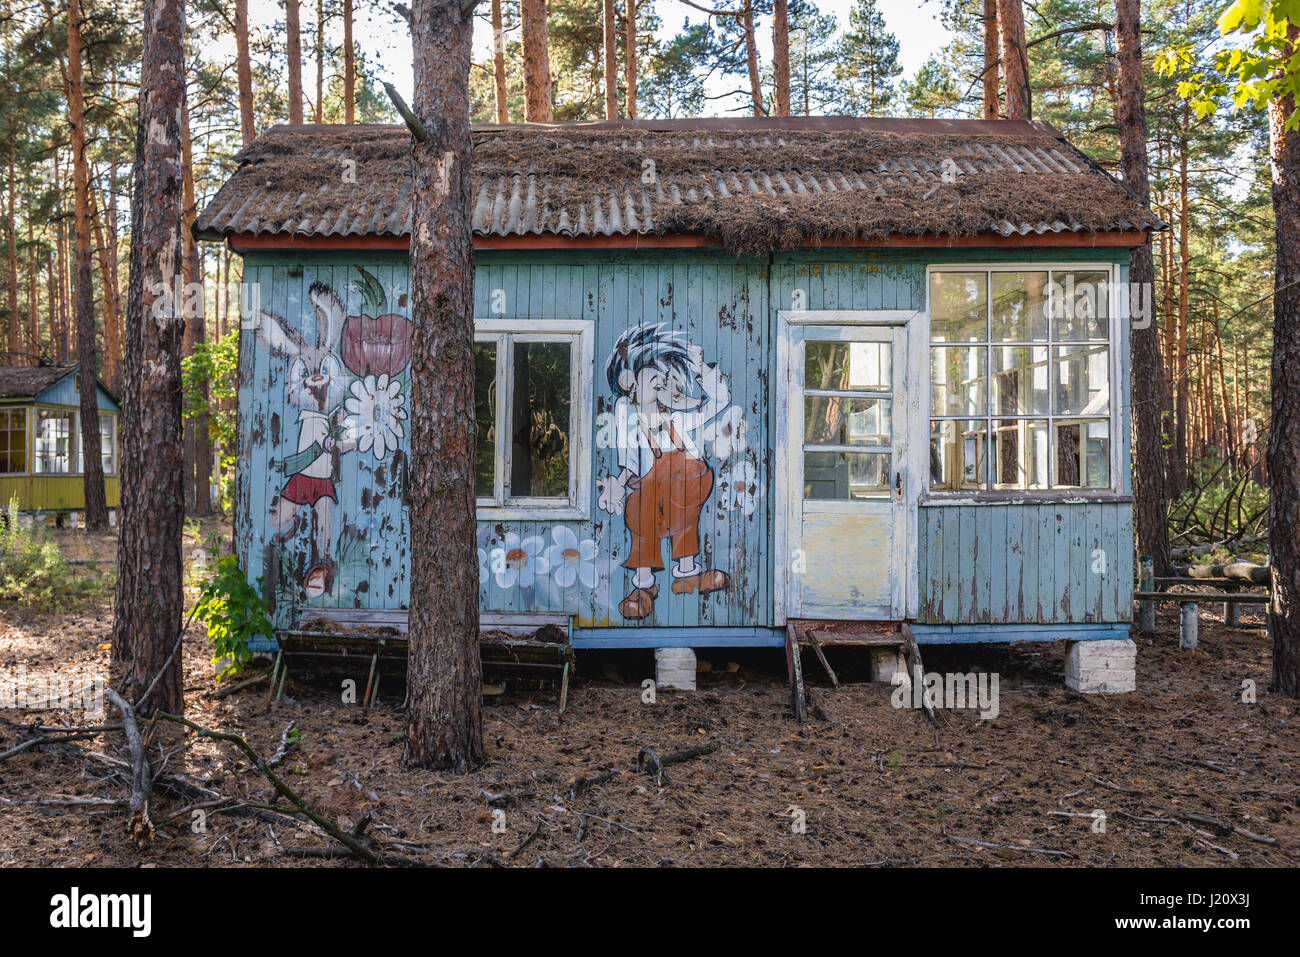 Russian cartoon characters drawed on a summer house in 'Emerald' recreation base in Chernobyl Nuclear Power - Stock Image